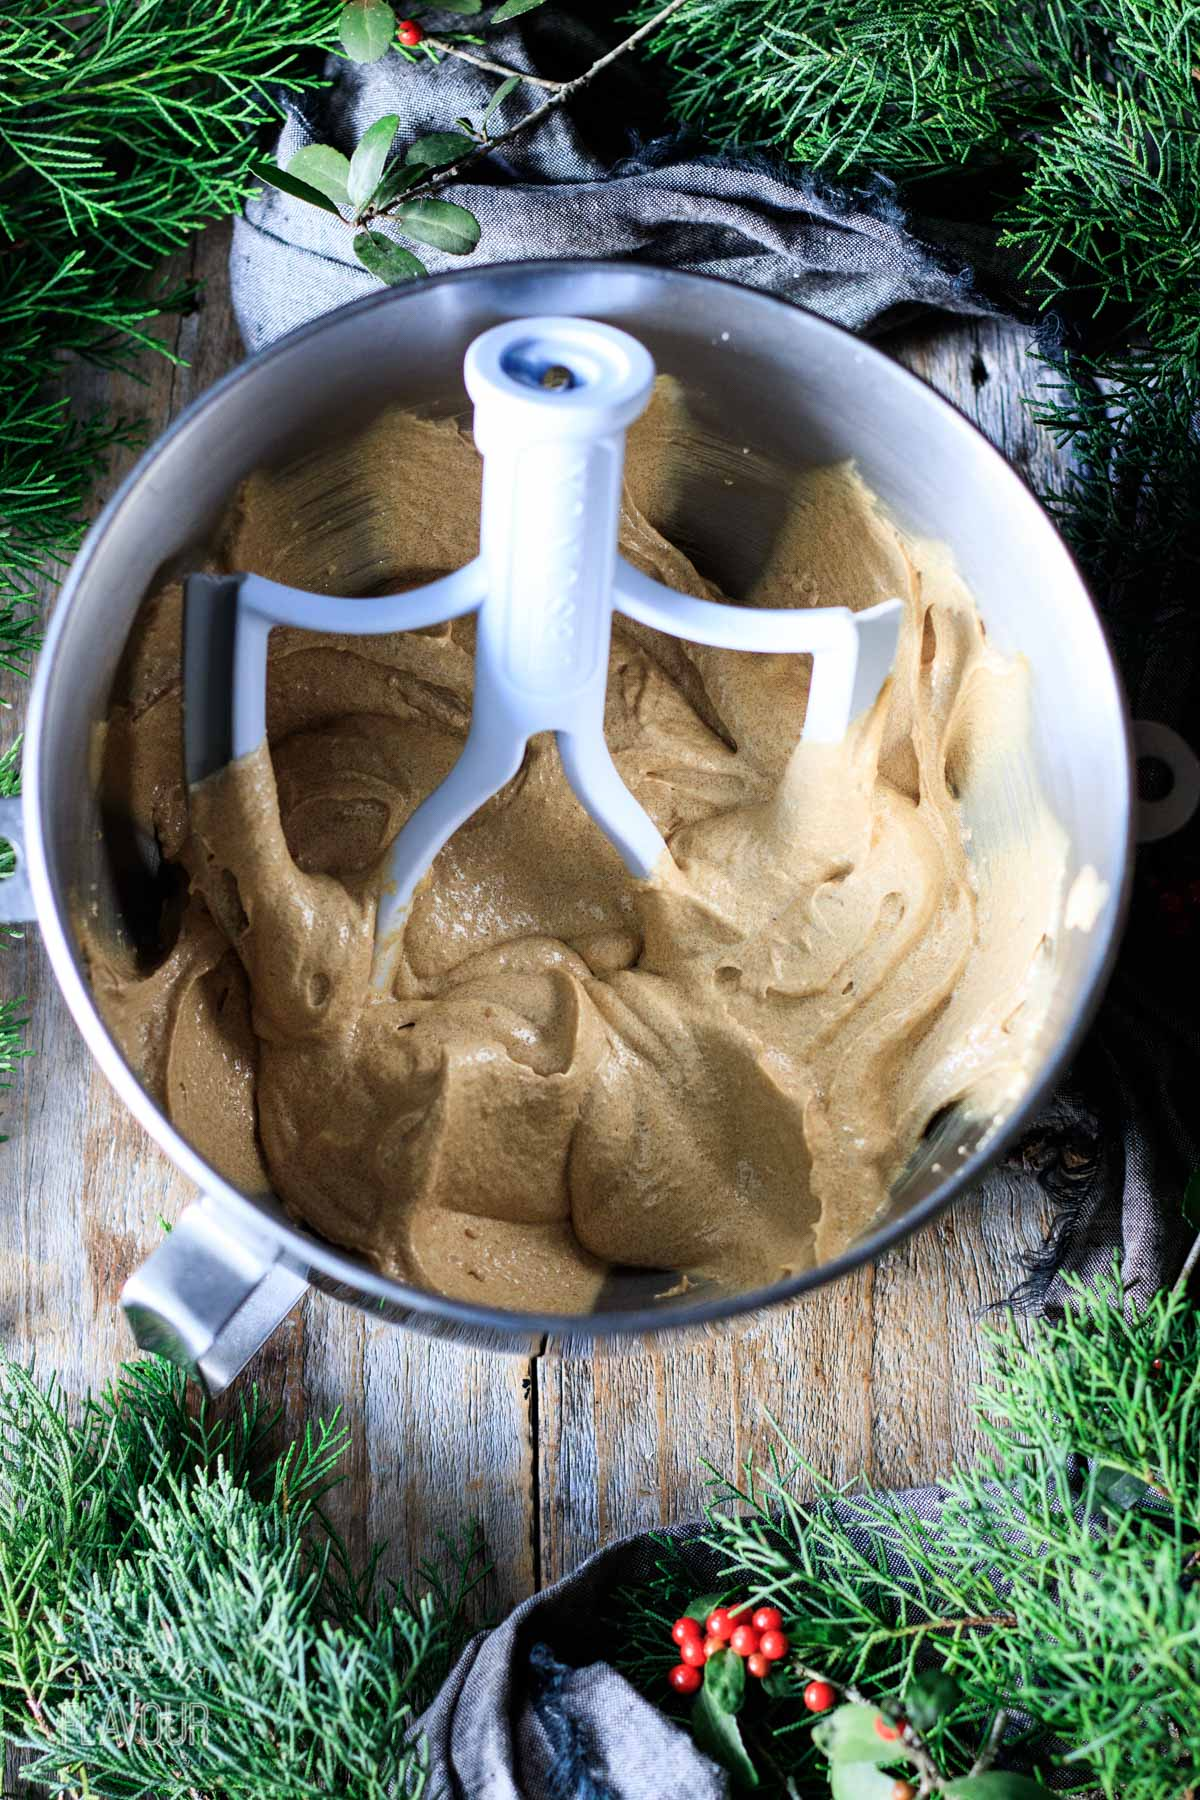 butter, molasses, and vanilla mixture in a mixing bowl